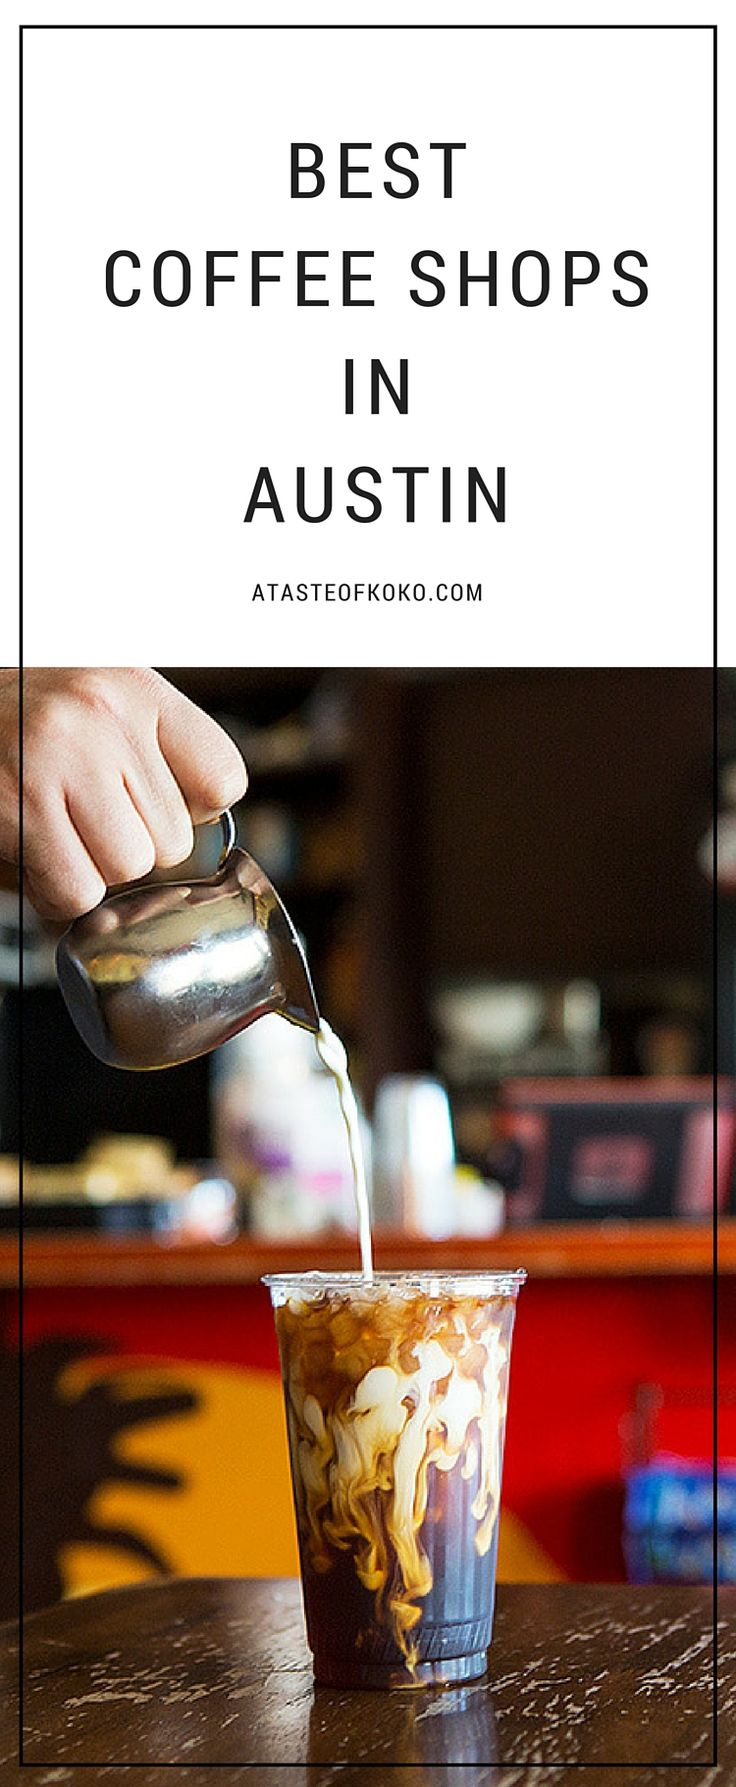 Best Coffee Shops In Austin | A Taste of Koko